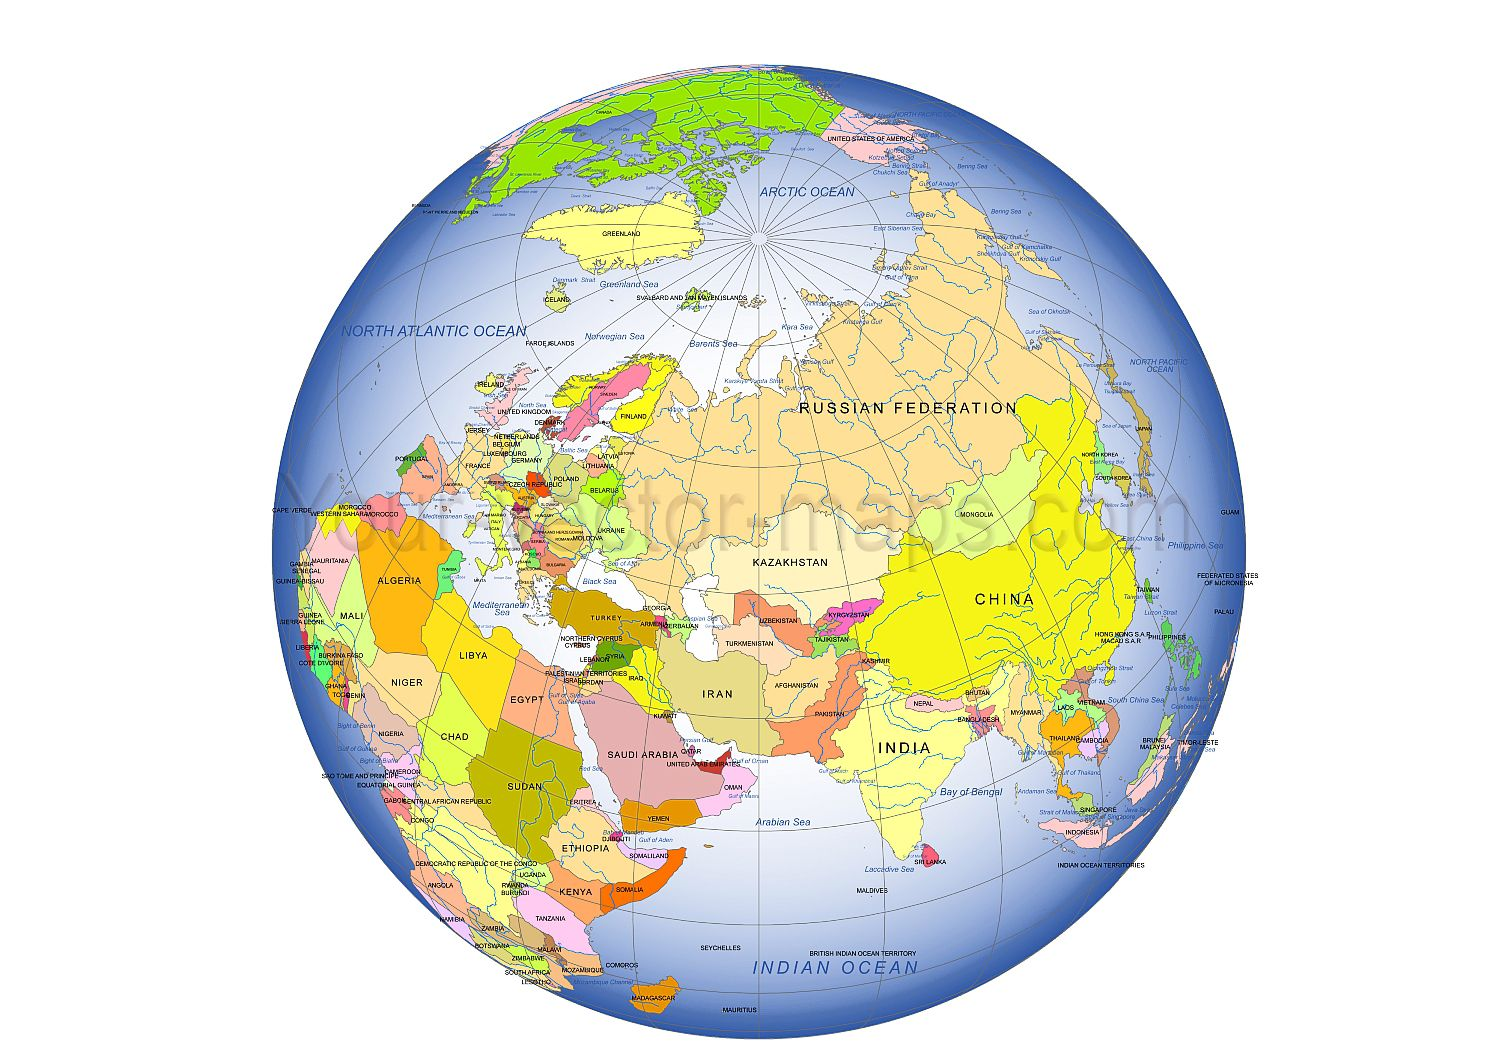 colored asia centered globe map country name ocean name